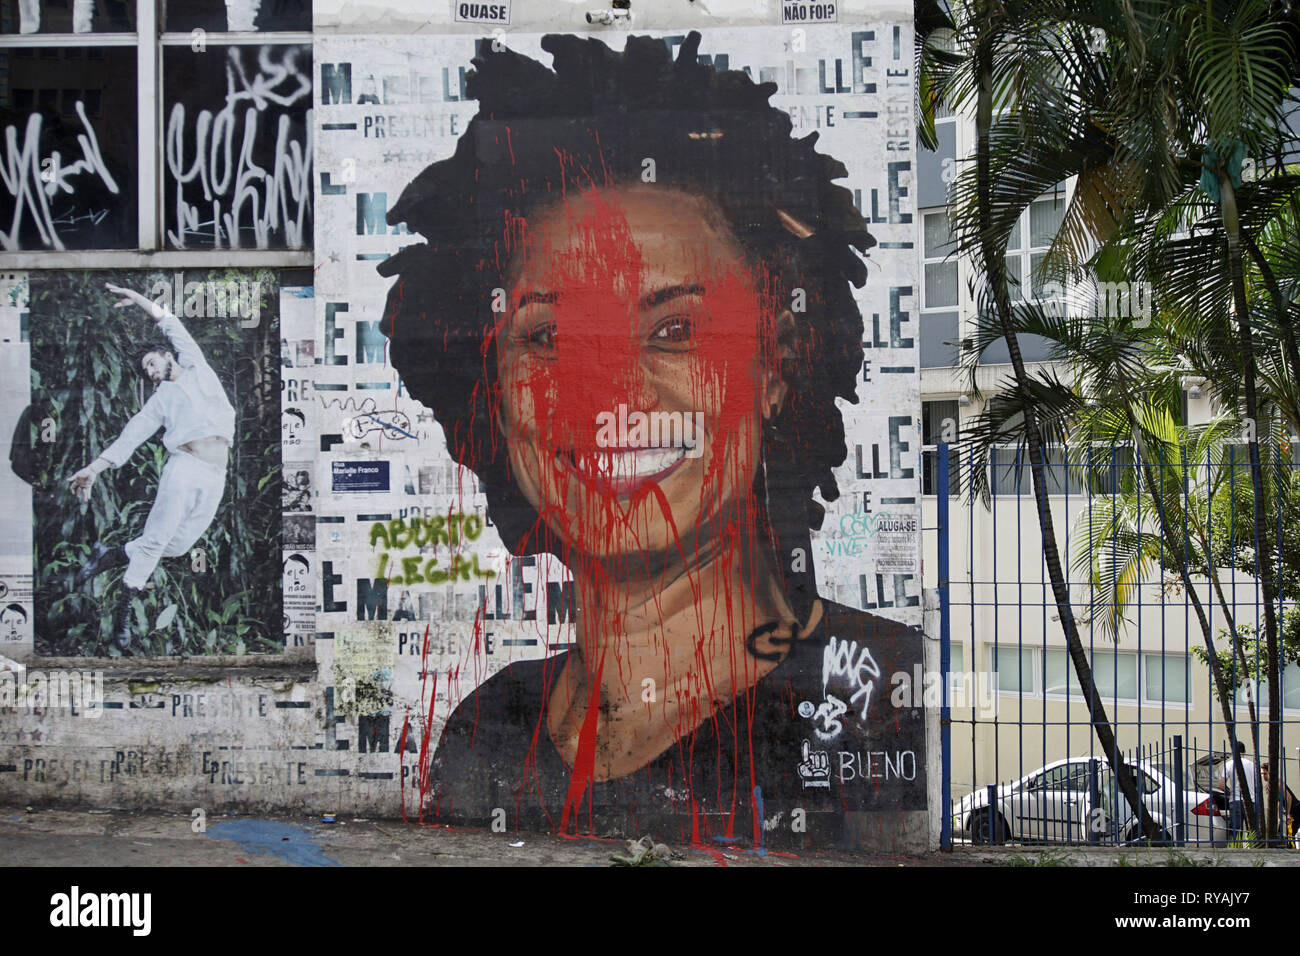 March 12, 2019 - SãO Paulo, São Paulo, Brazil - São Paulo (SP), 12/03/2019 - MARIELLE FRANCO - Two arrests, one year after the assassination of Marielle Franco in Brazil. According to the G1 news site citing judicial sources, the authorities arrested two police officers suspected of being involved in the death of the woman elected in March 2018. They are two members of the military police, one of whom is believed to be the author of the shots, and the other to be the driver of the vehicle on which they were driving, according to these sources. Marielle Franco, a city councilwoman born in f - Stock Image